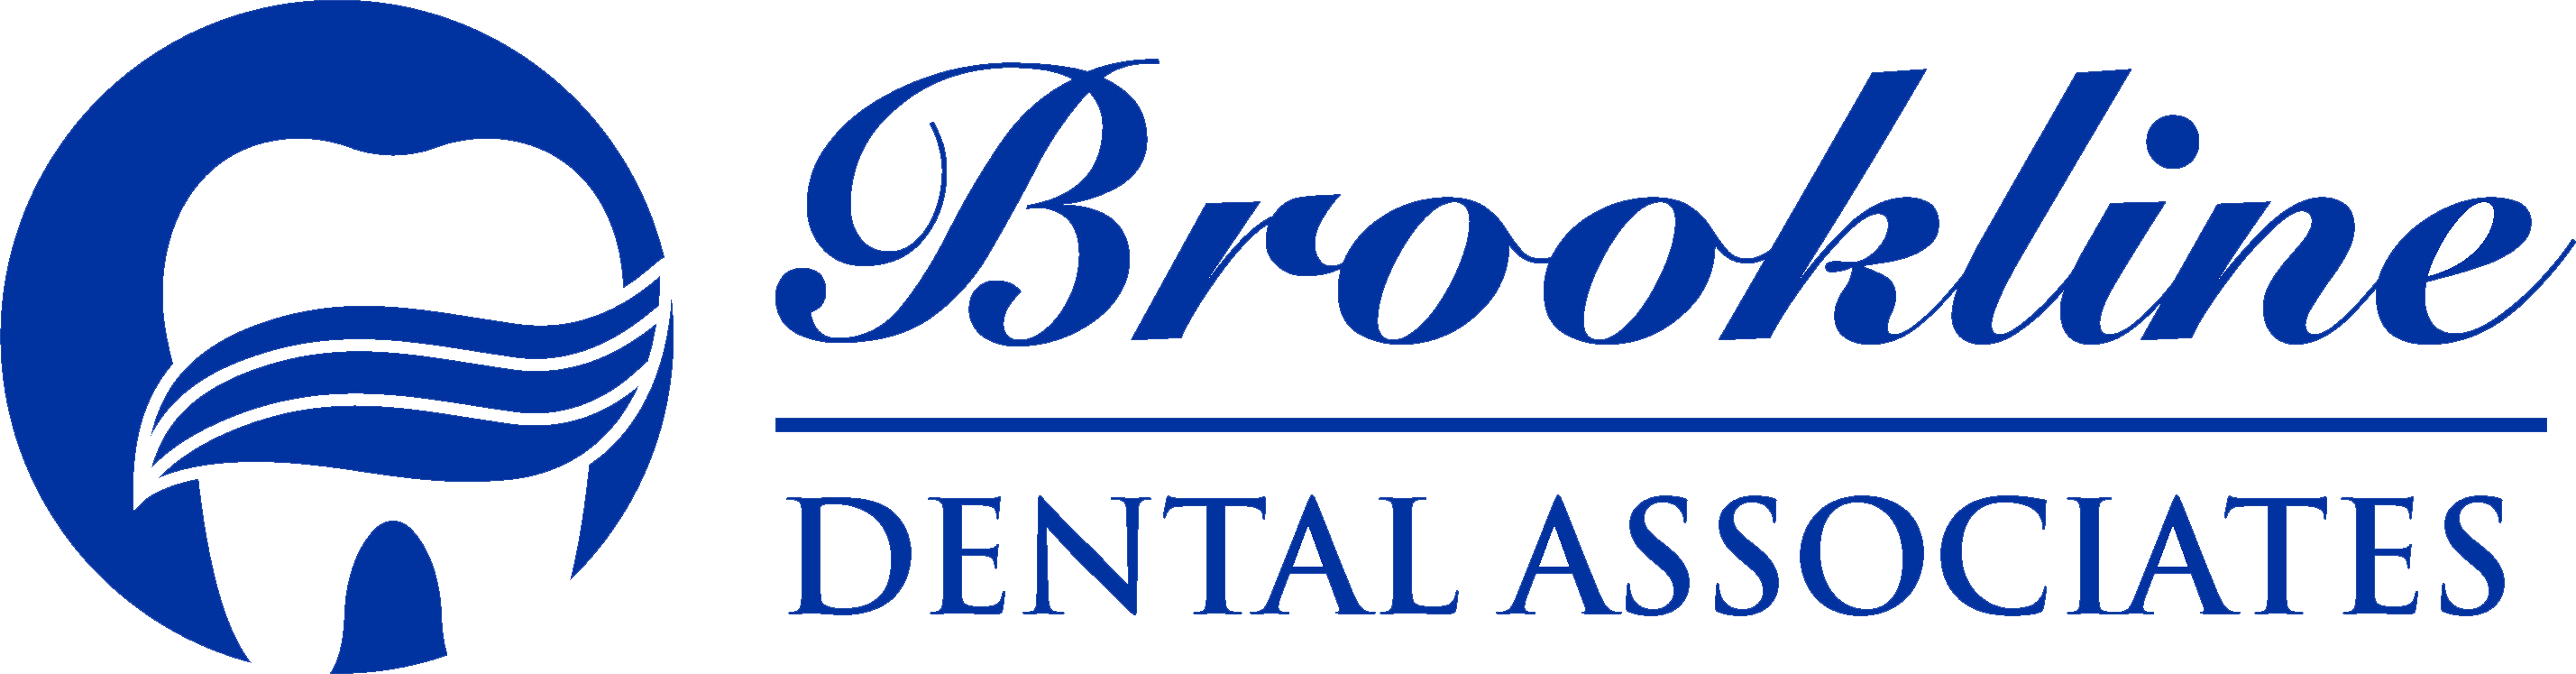 Brookline Dental Associates - Dentists in Havertown, PA